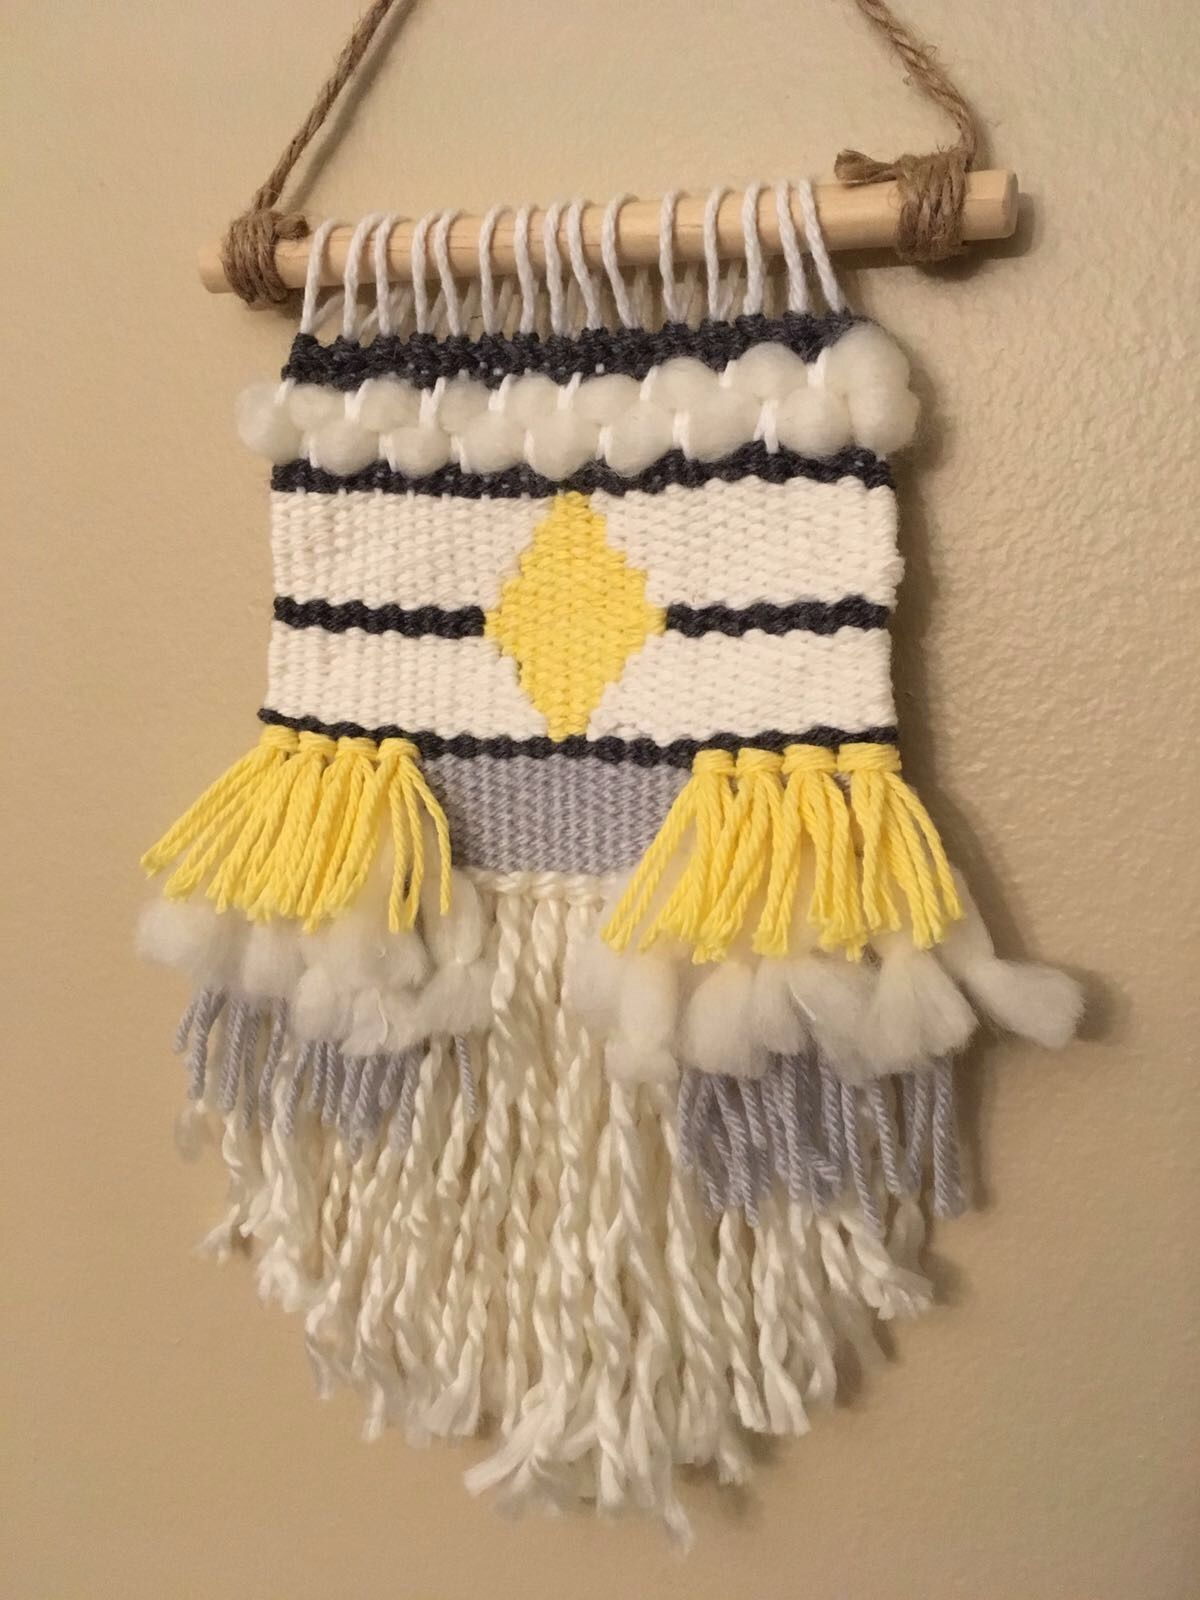 Woven wall hanging | MY BEAD & KNOT | Pinterest